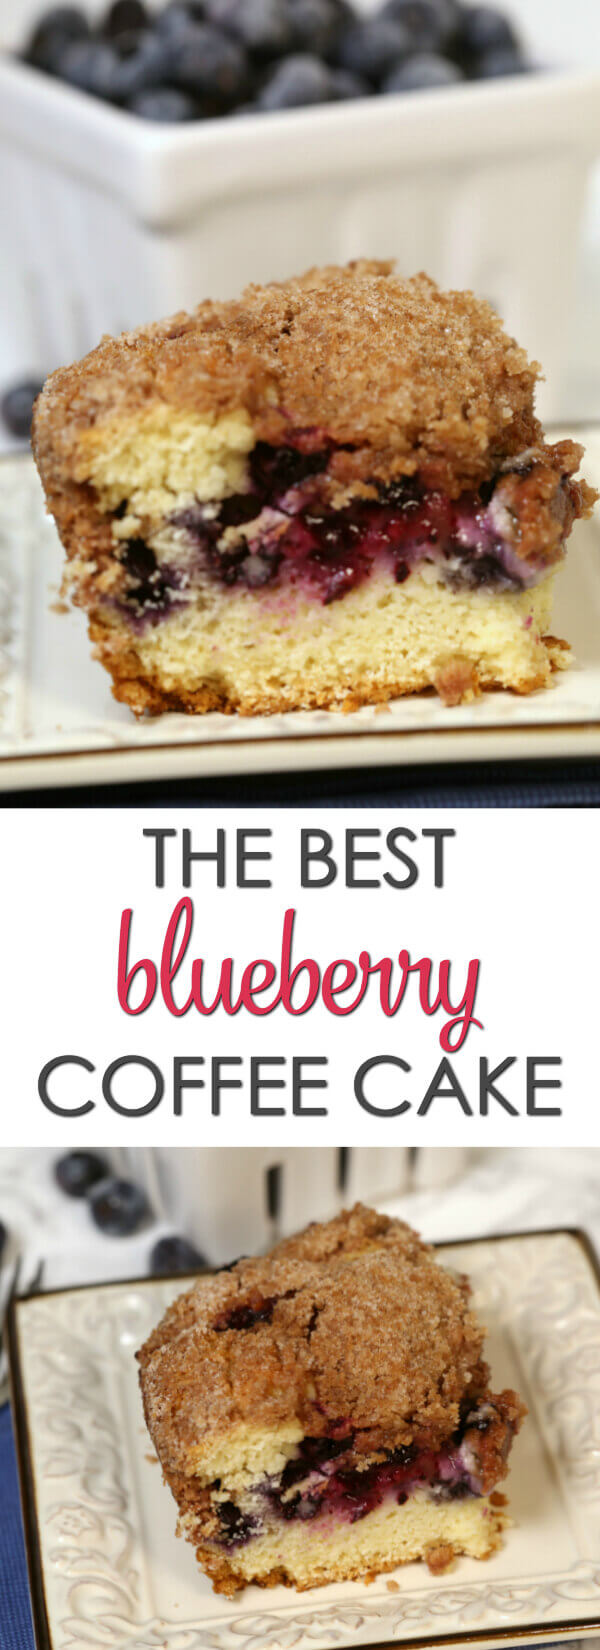 Blueberry Coffee Cake on a white plate with a bowl of blueberries.